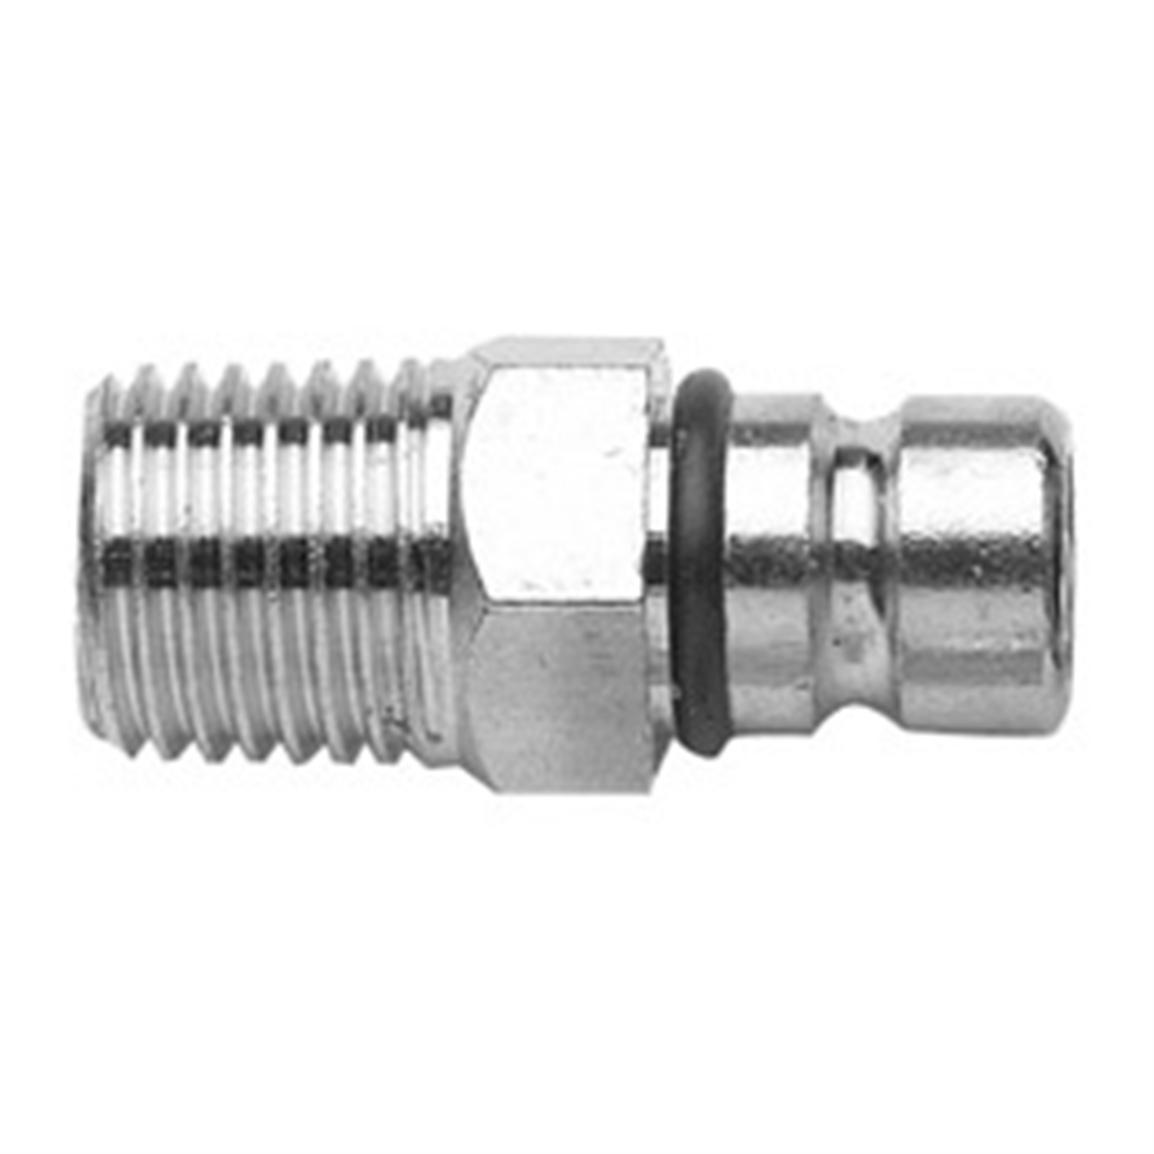 "Moeller® 1/4"" NPT Male Tank Connector for Suzuki® engines"